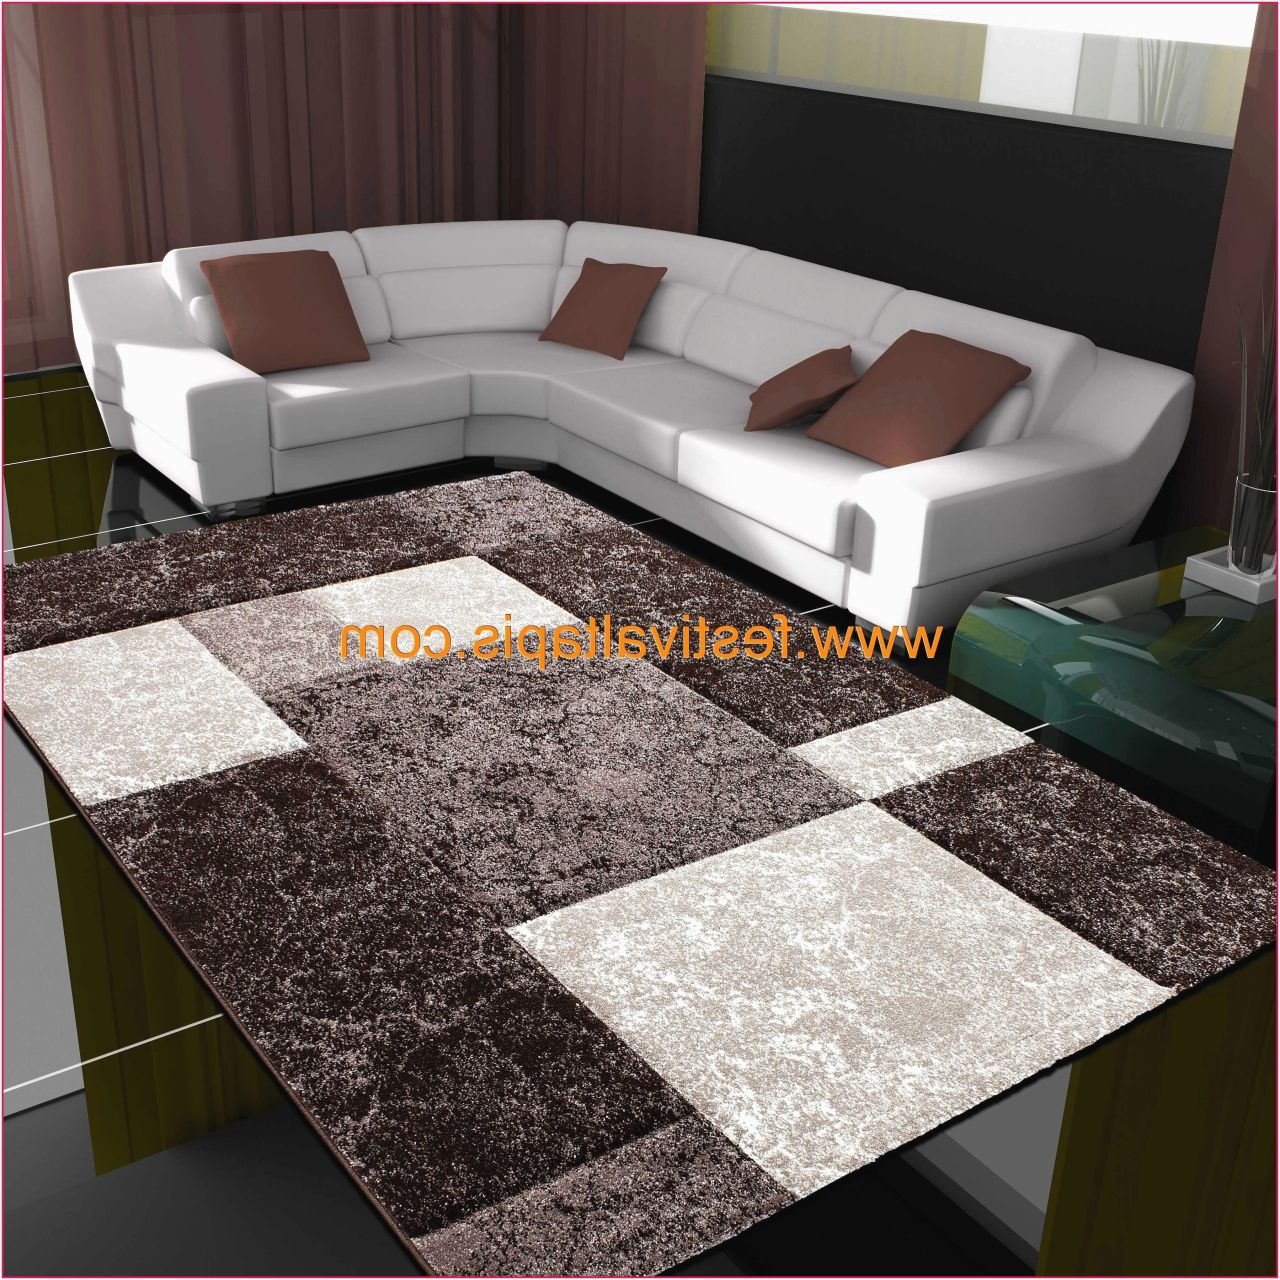 Tapis Salon 28 Grand Tapis Salon Desember 2019 Idée Couleur Salon In 2019